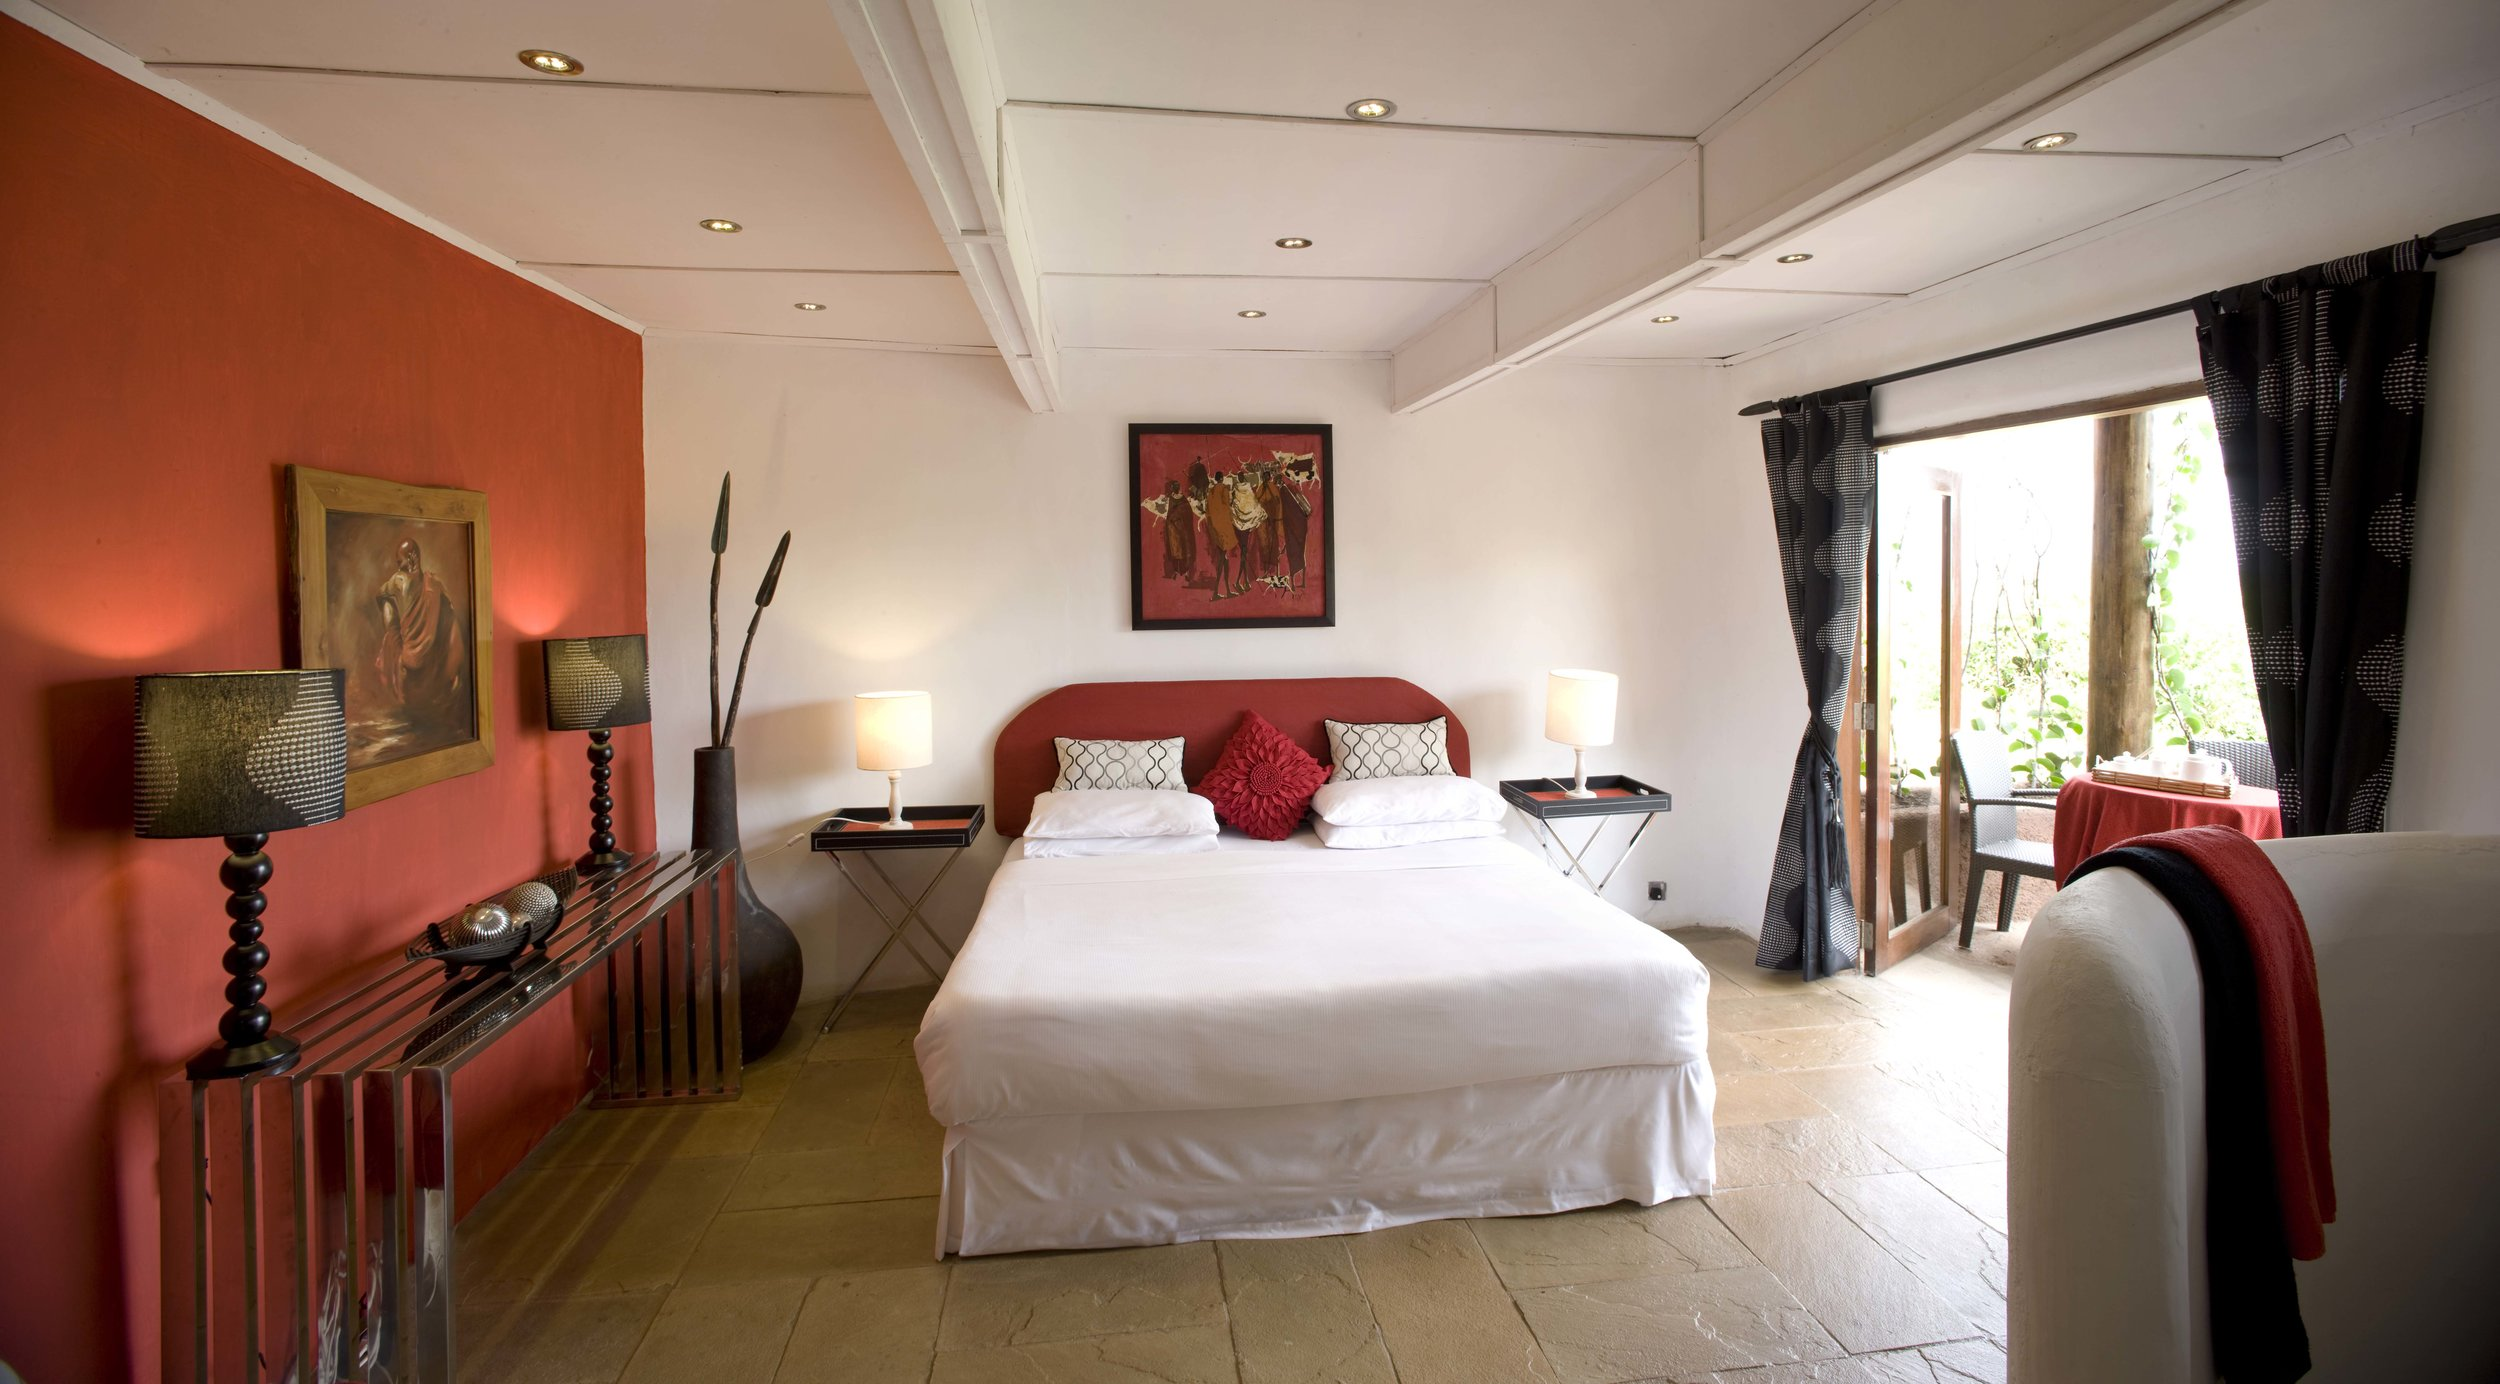 cottars_private_house_the_maasai_red_room_2012-8.jpg